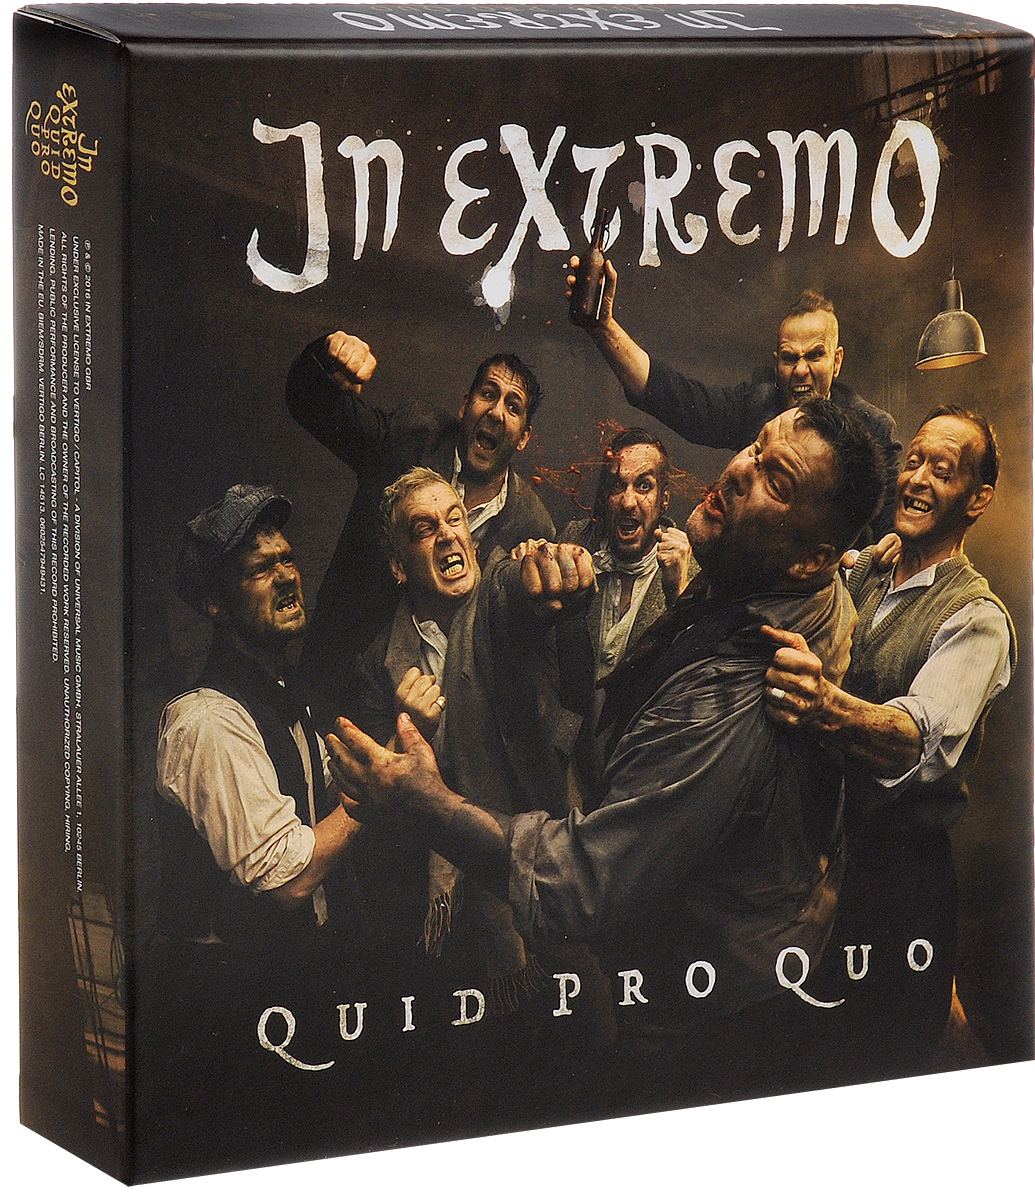 In Extremo In Extremo. Quid Pro Quo. Deluxe Edition (2 CD + LP) selena limited edition picture disc cd rare collectible music display